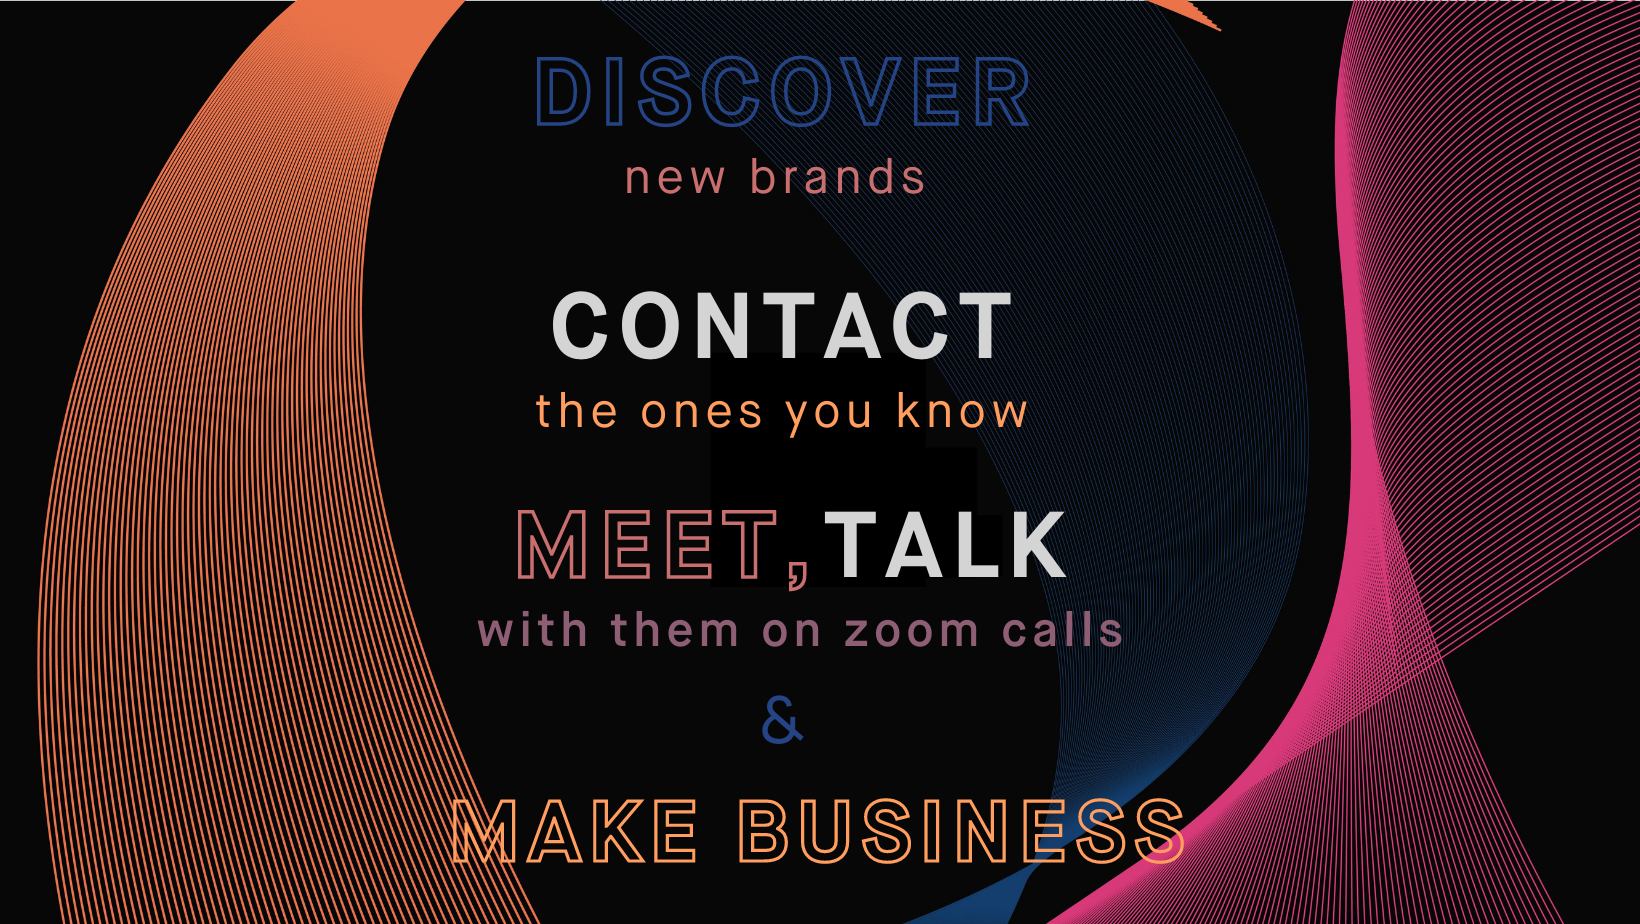 DISCOVER new brands, CONTACT the ones you know, MEET & TALK with them on zoom calls, MAKE BUSINESS